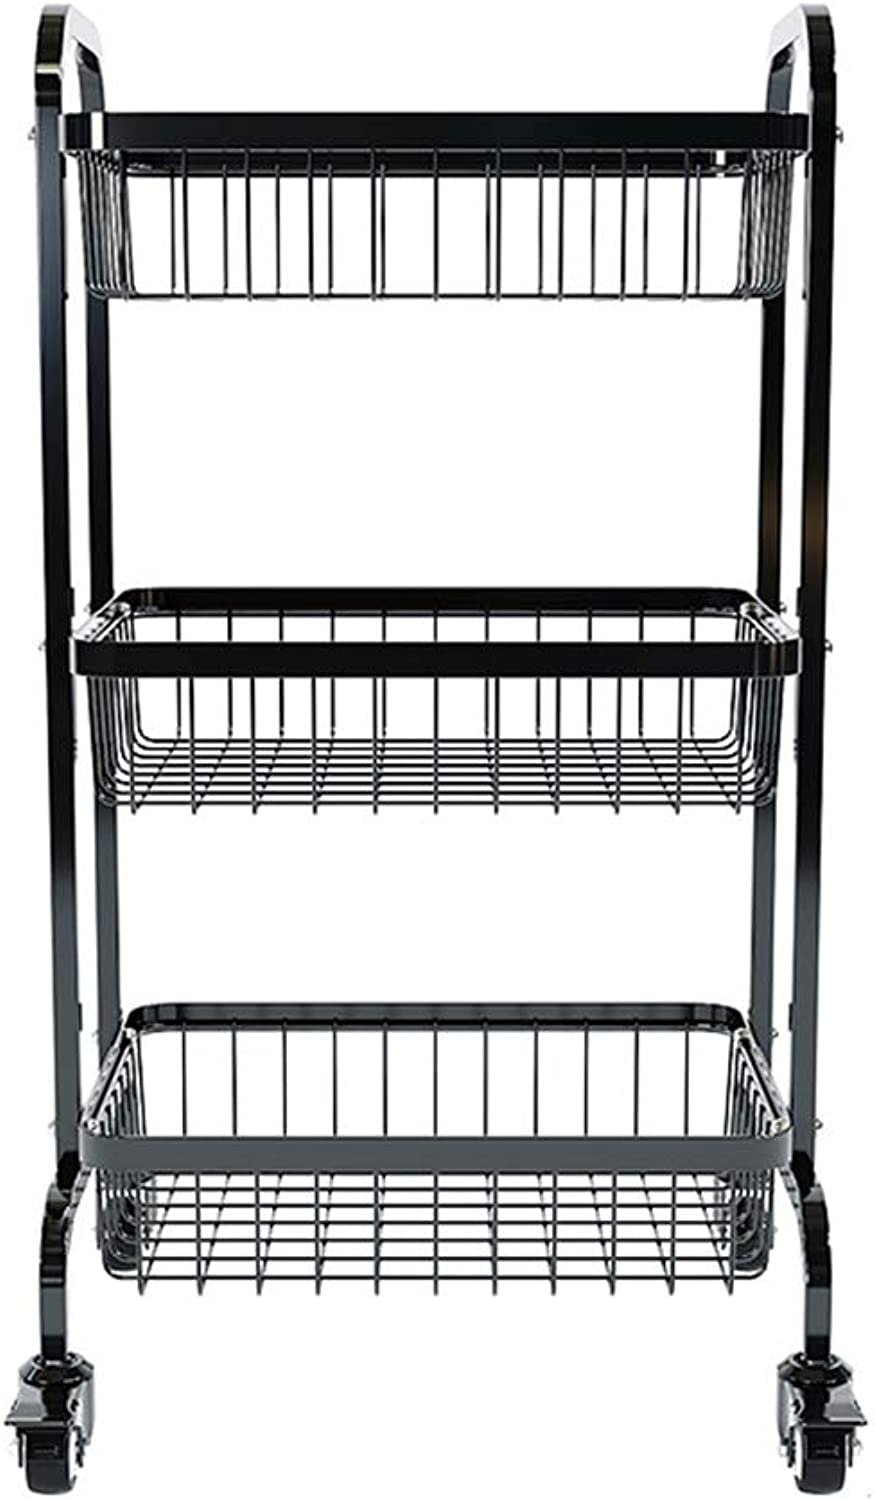 Kitchen Vegetable Rack Floor-Standing Stainless Steel Thickening 3 Layer with Wheels Fruit Storage Basket Vegetable Shelf 48 Wx46 Dx85 H cm. (color   Black)